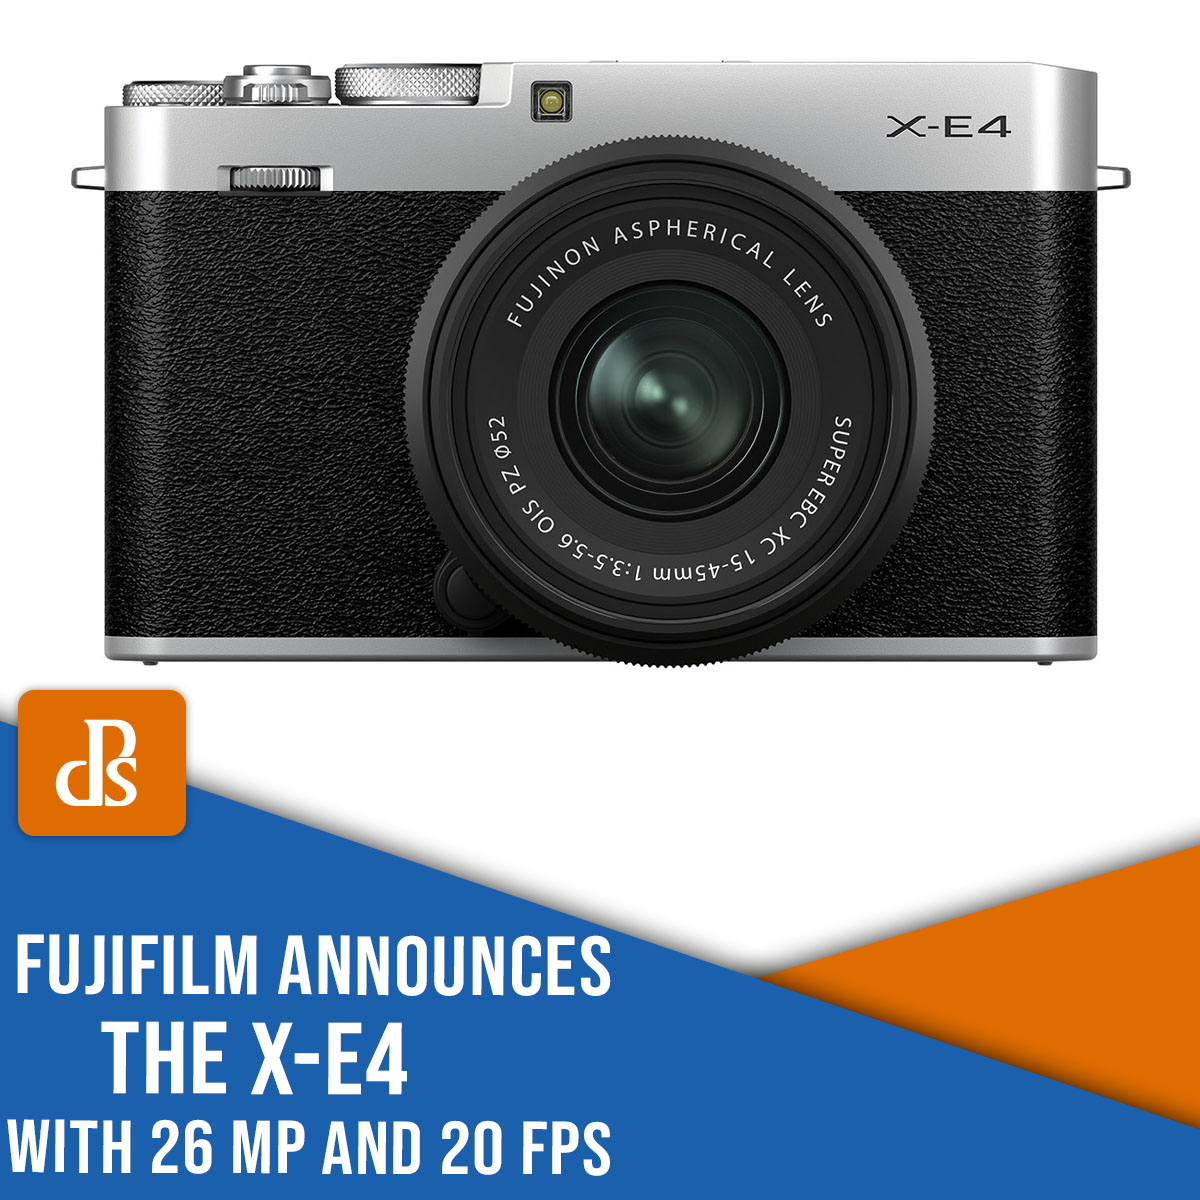 Fujifilm Announces the X-E4, With 26 MP and 20 FPS (for Just $850)